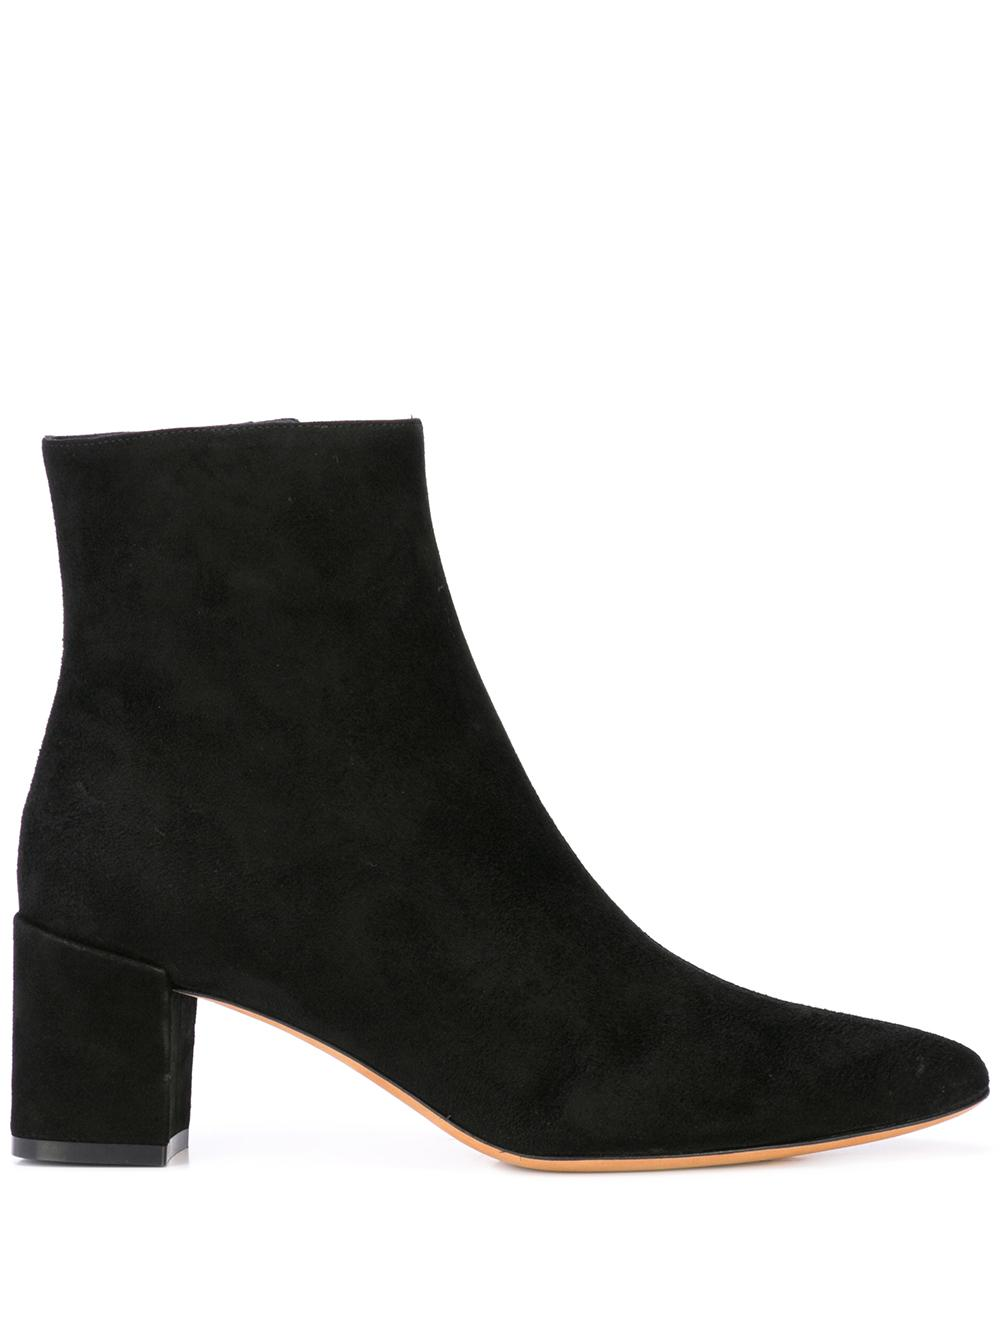 Suede Leather Bootie With Block Heel Item # LANICA